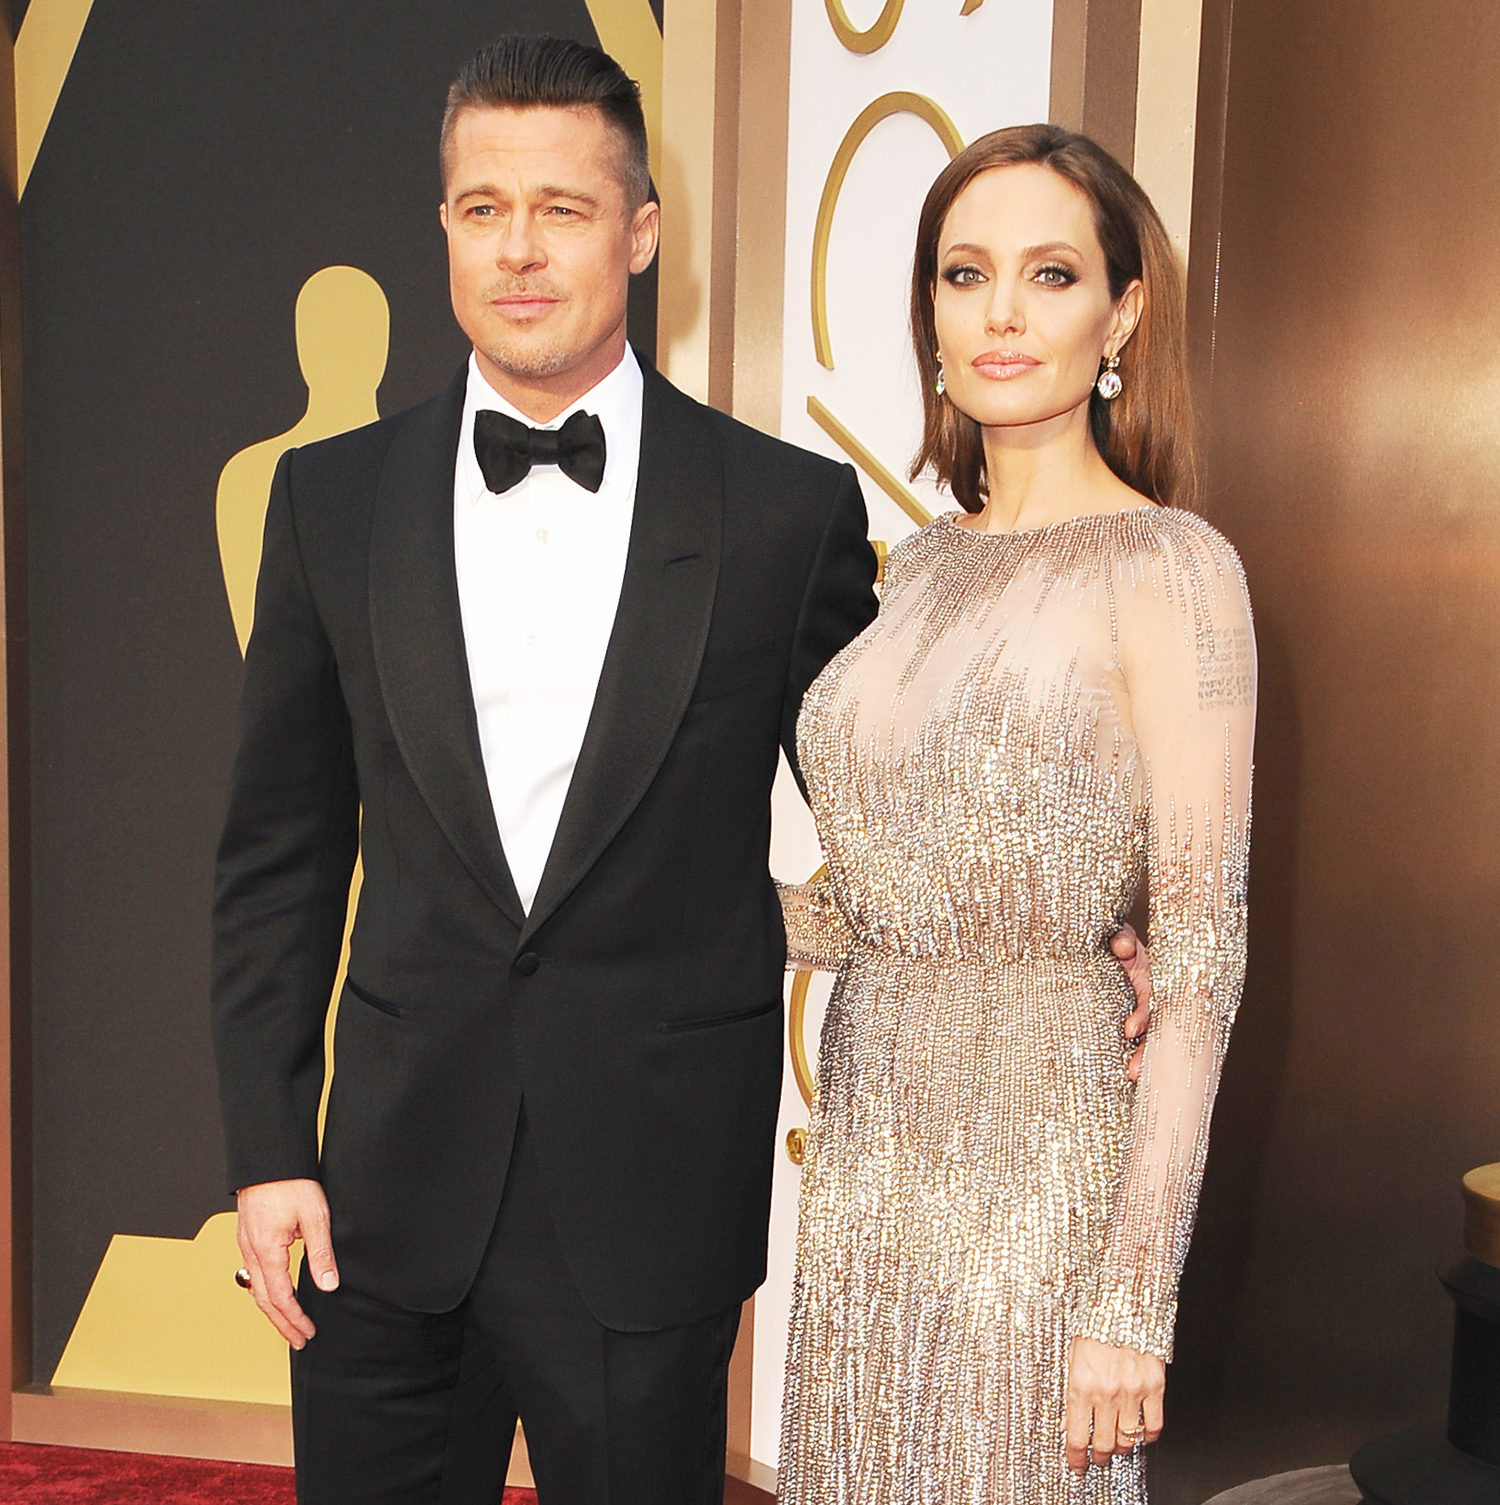 Brad Pitt and Angelina Jolie attend the Oscars held at Hollywood & Highland Center on March 2, 2014 in Hollywood, California.